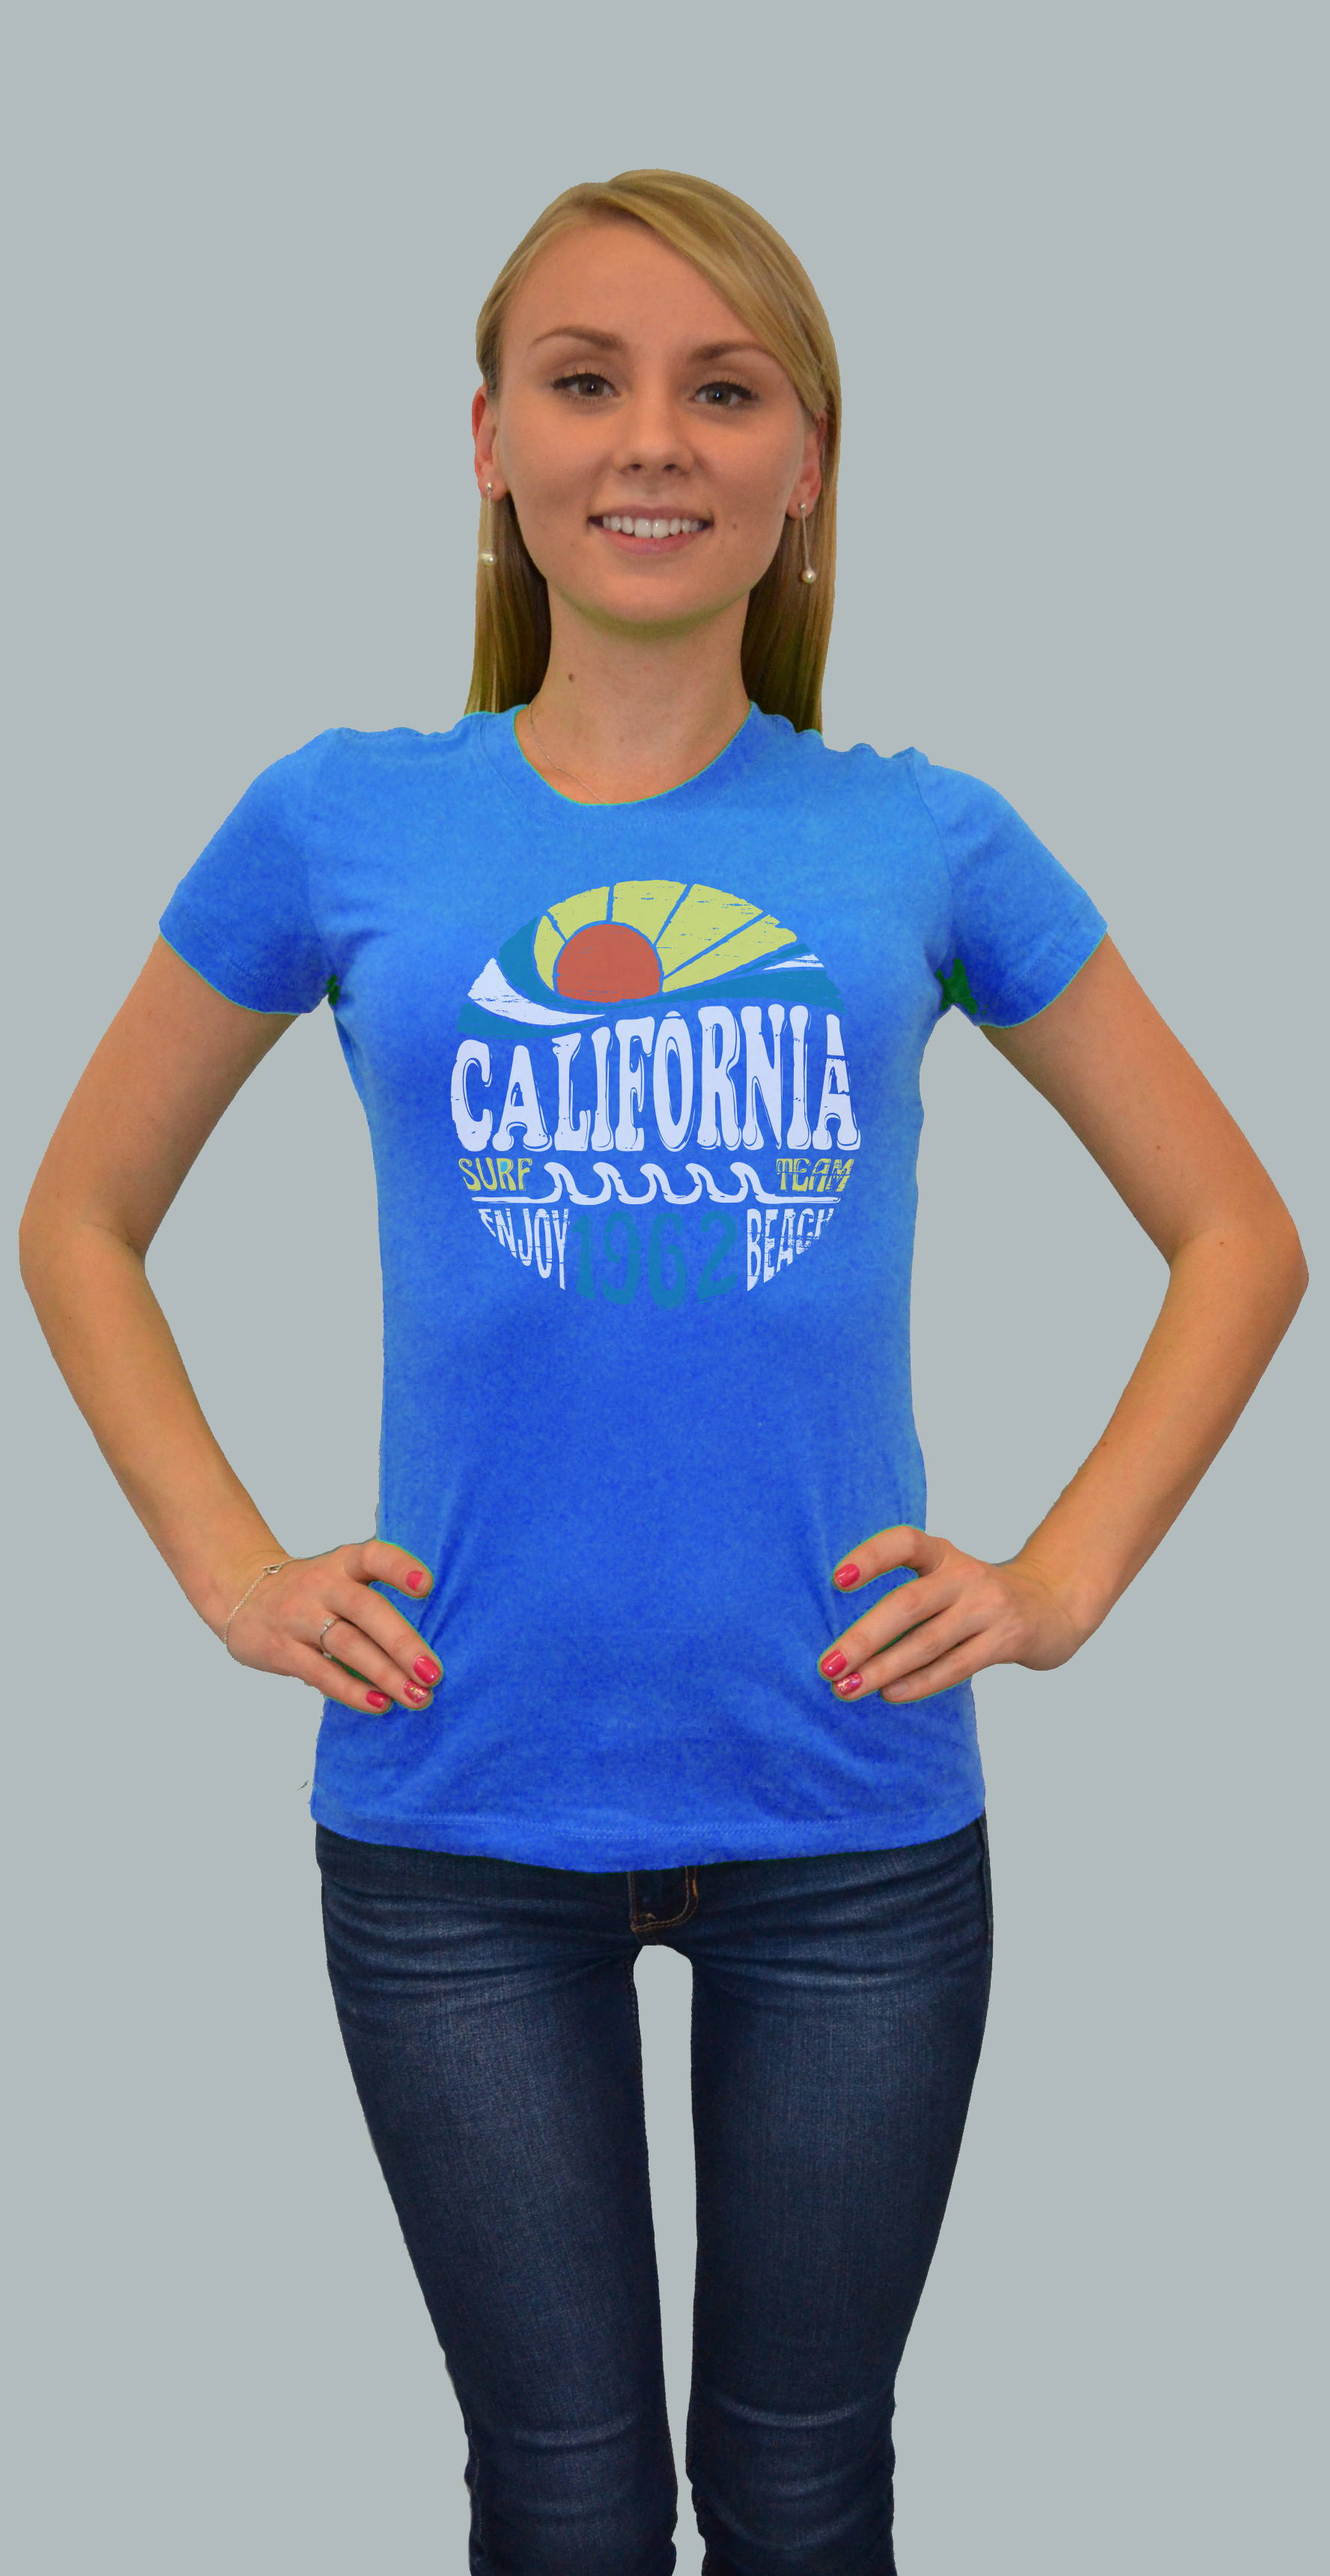 Cali retro groove baby doll san diego trading company for T shirt screen printing san diego